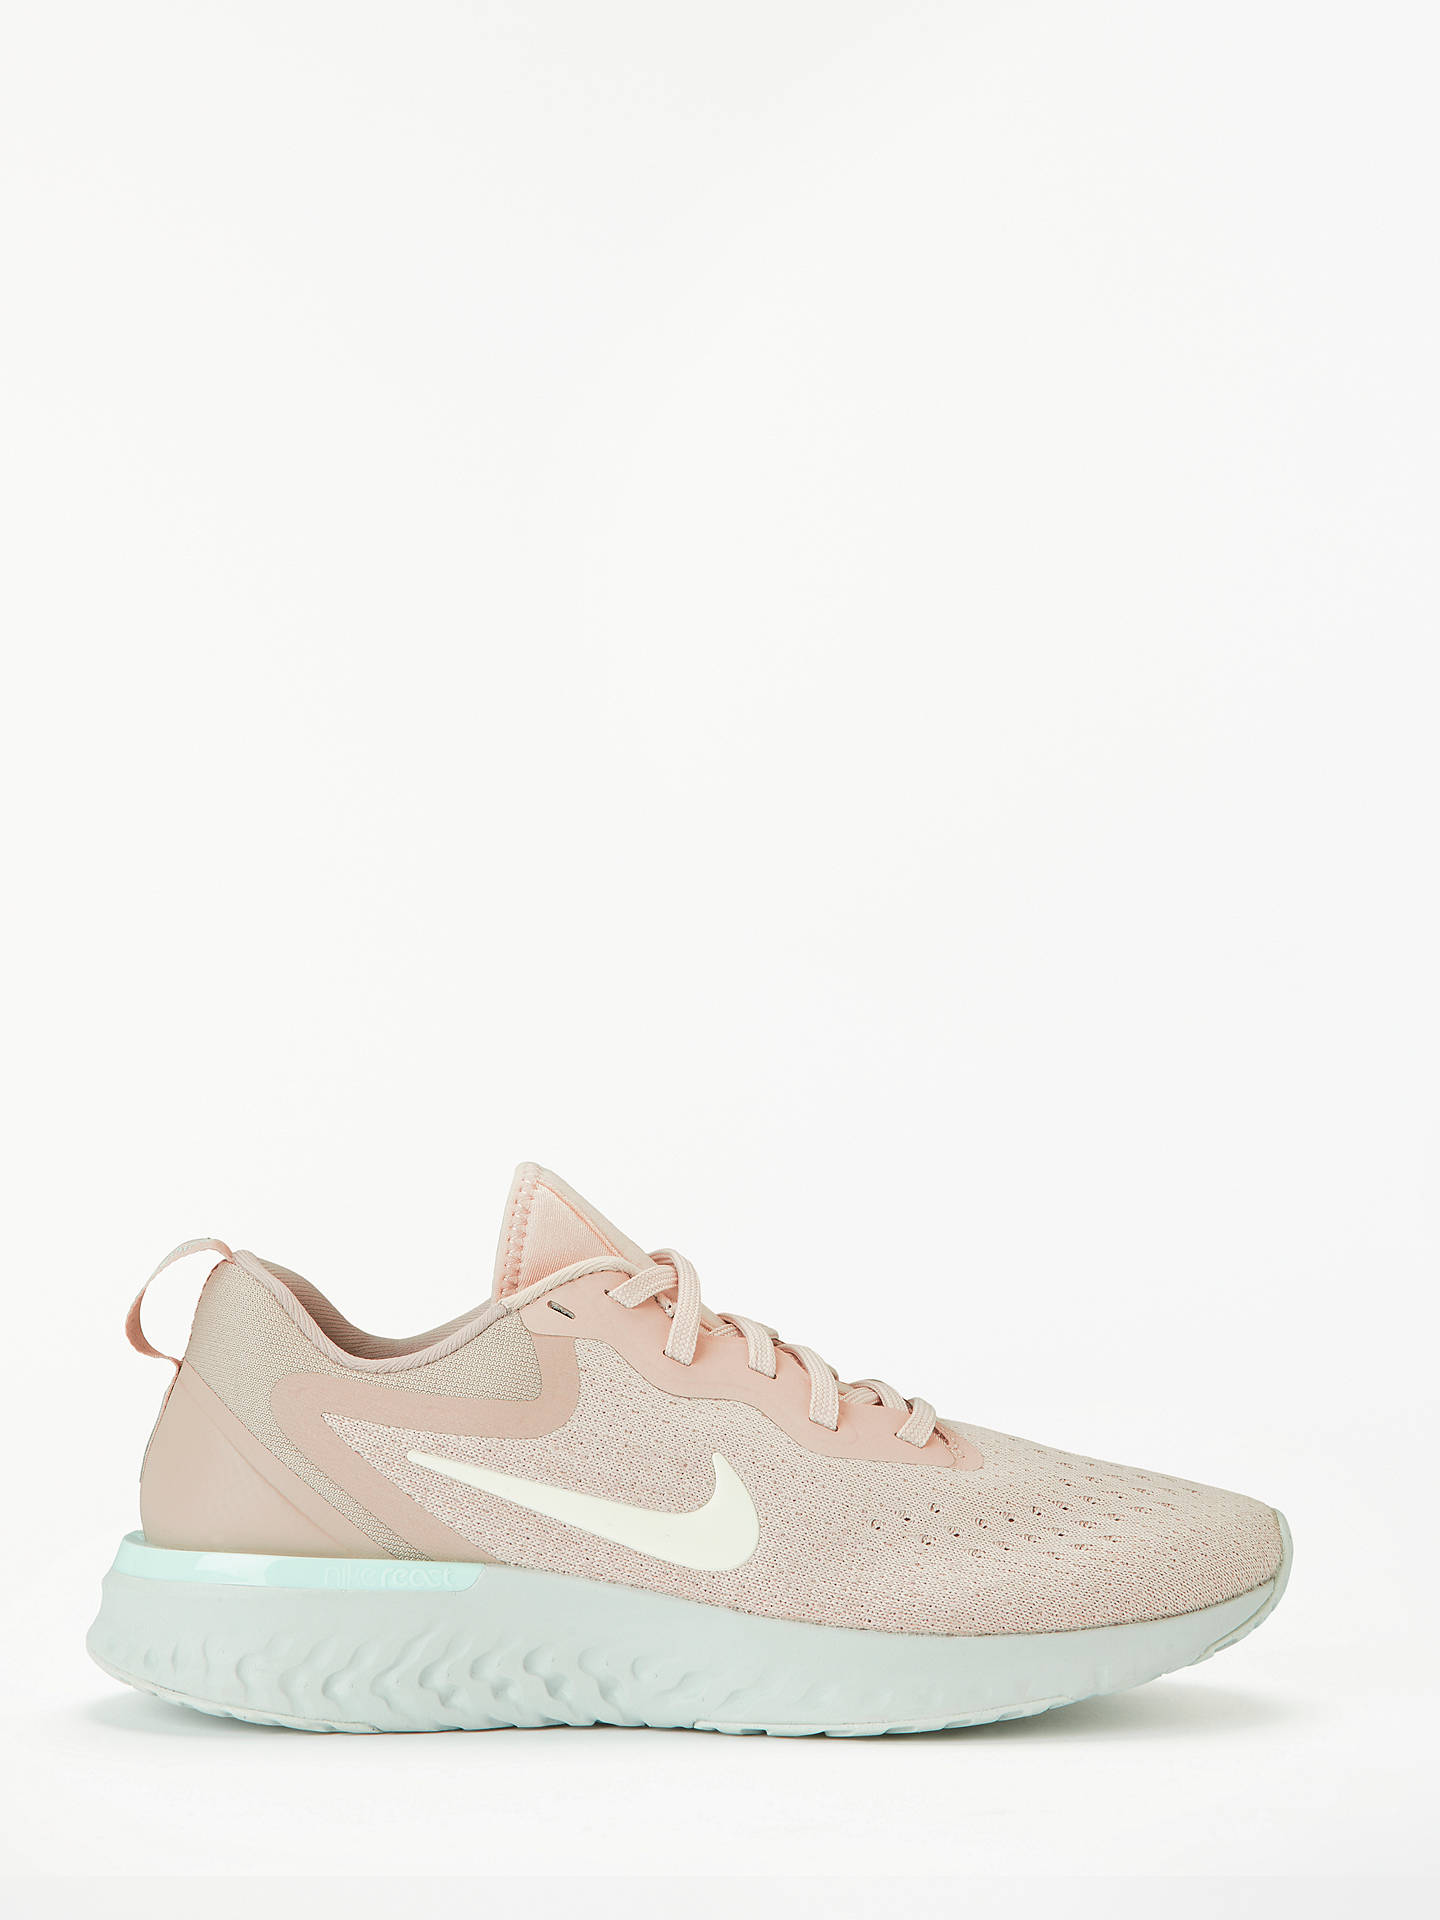 promo code 23014 75cb6 Buy Nike Odyssey React Women s Running Shoe, Particle Beige Phantom Diffused  Taupe, ...